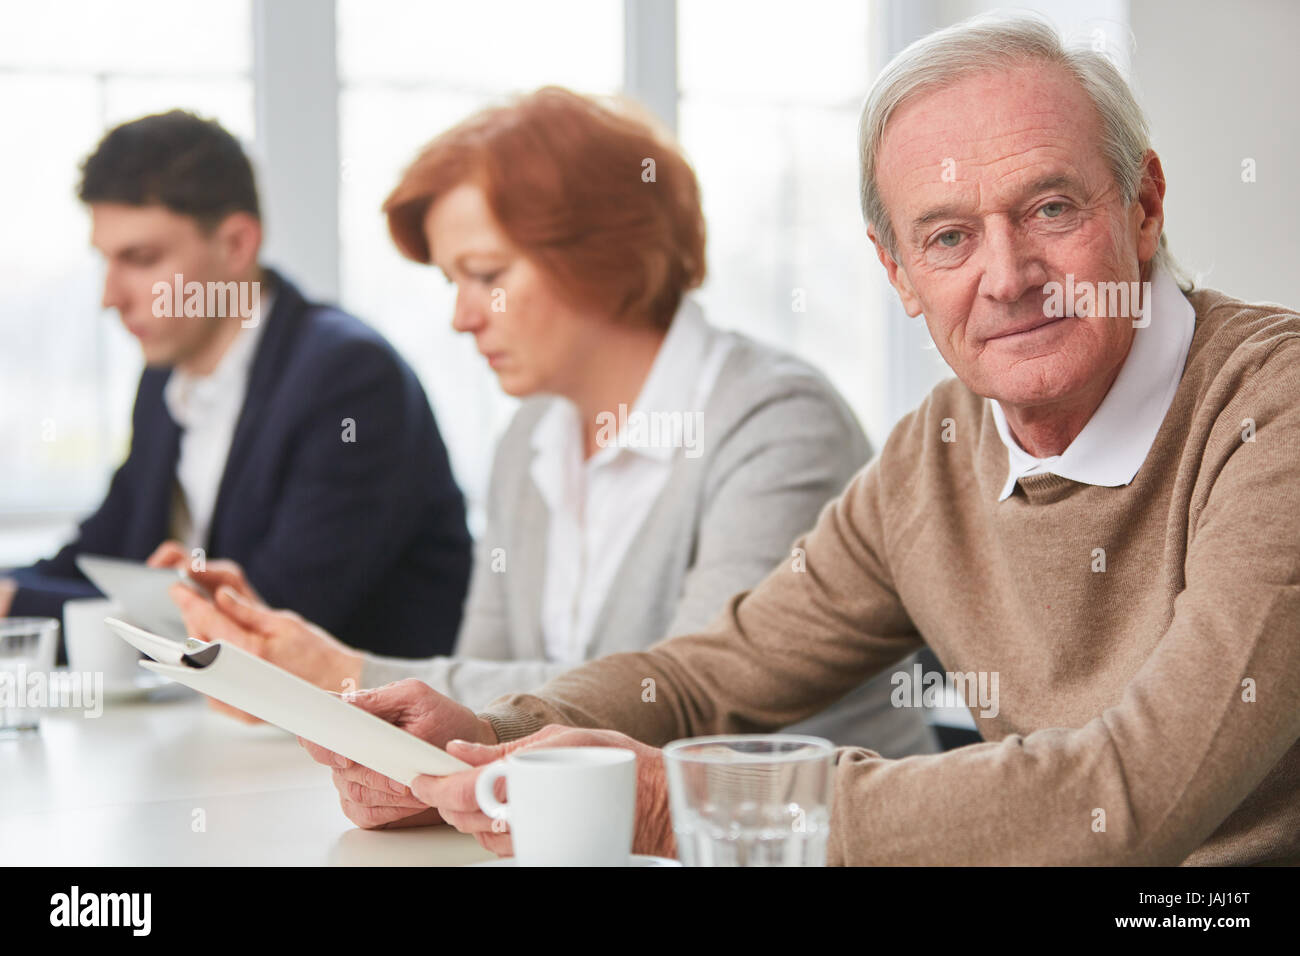 Senior man as businessman with experience and competence - Stock Image